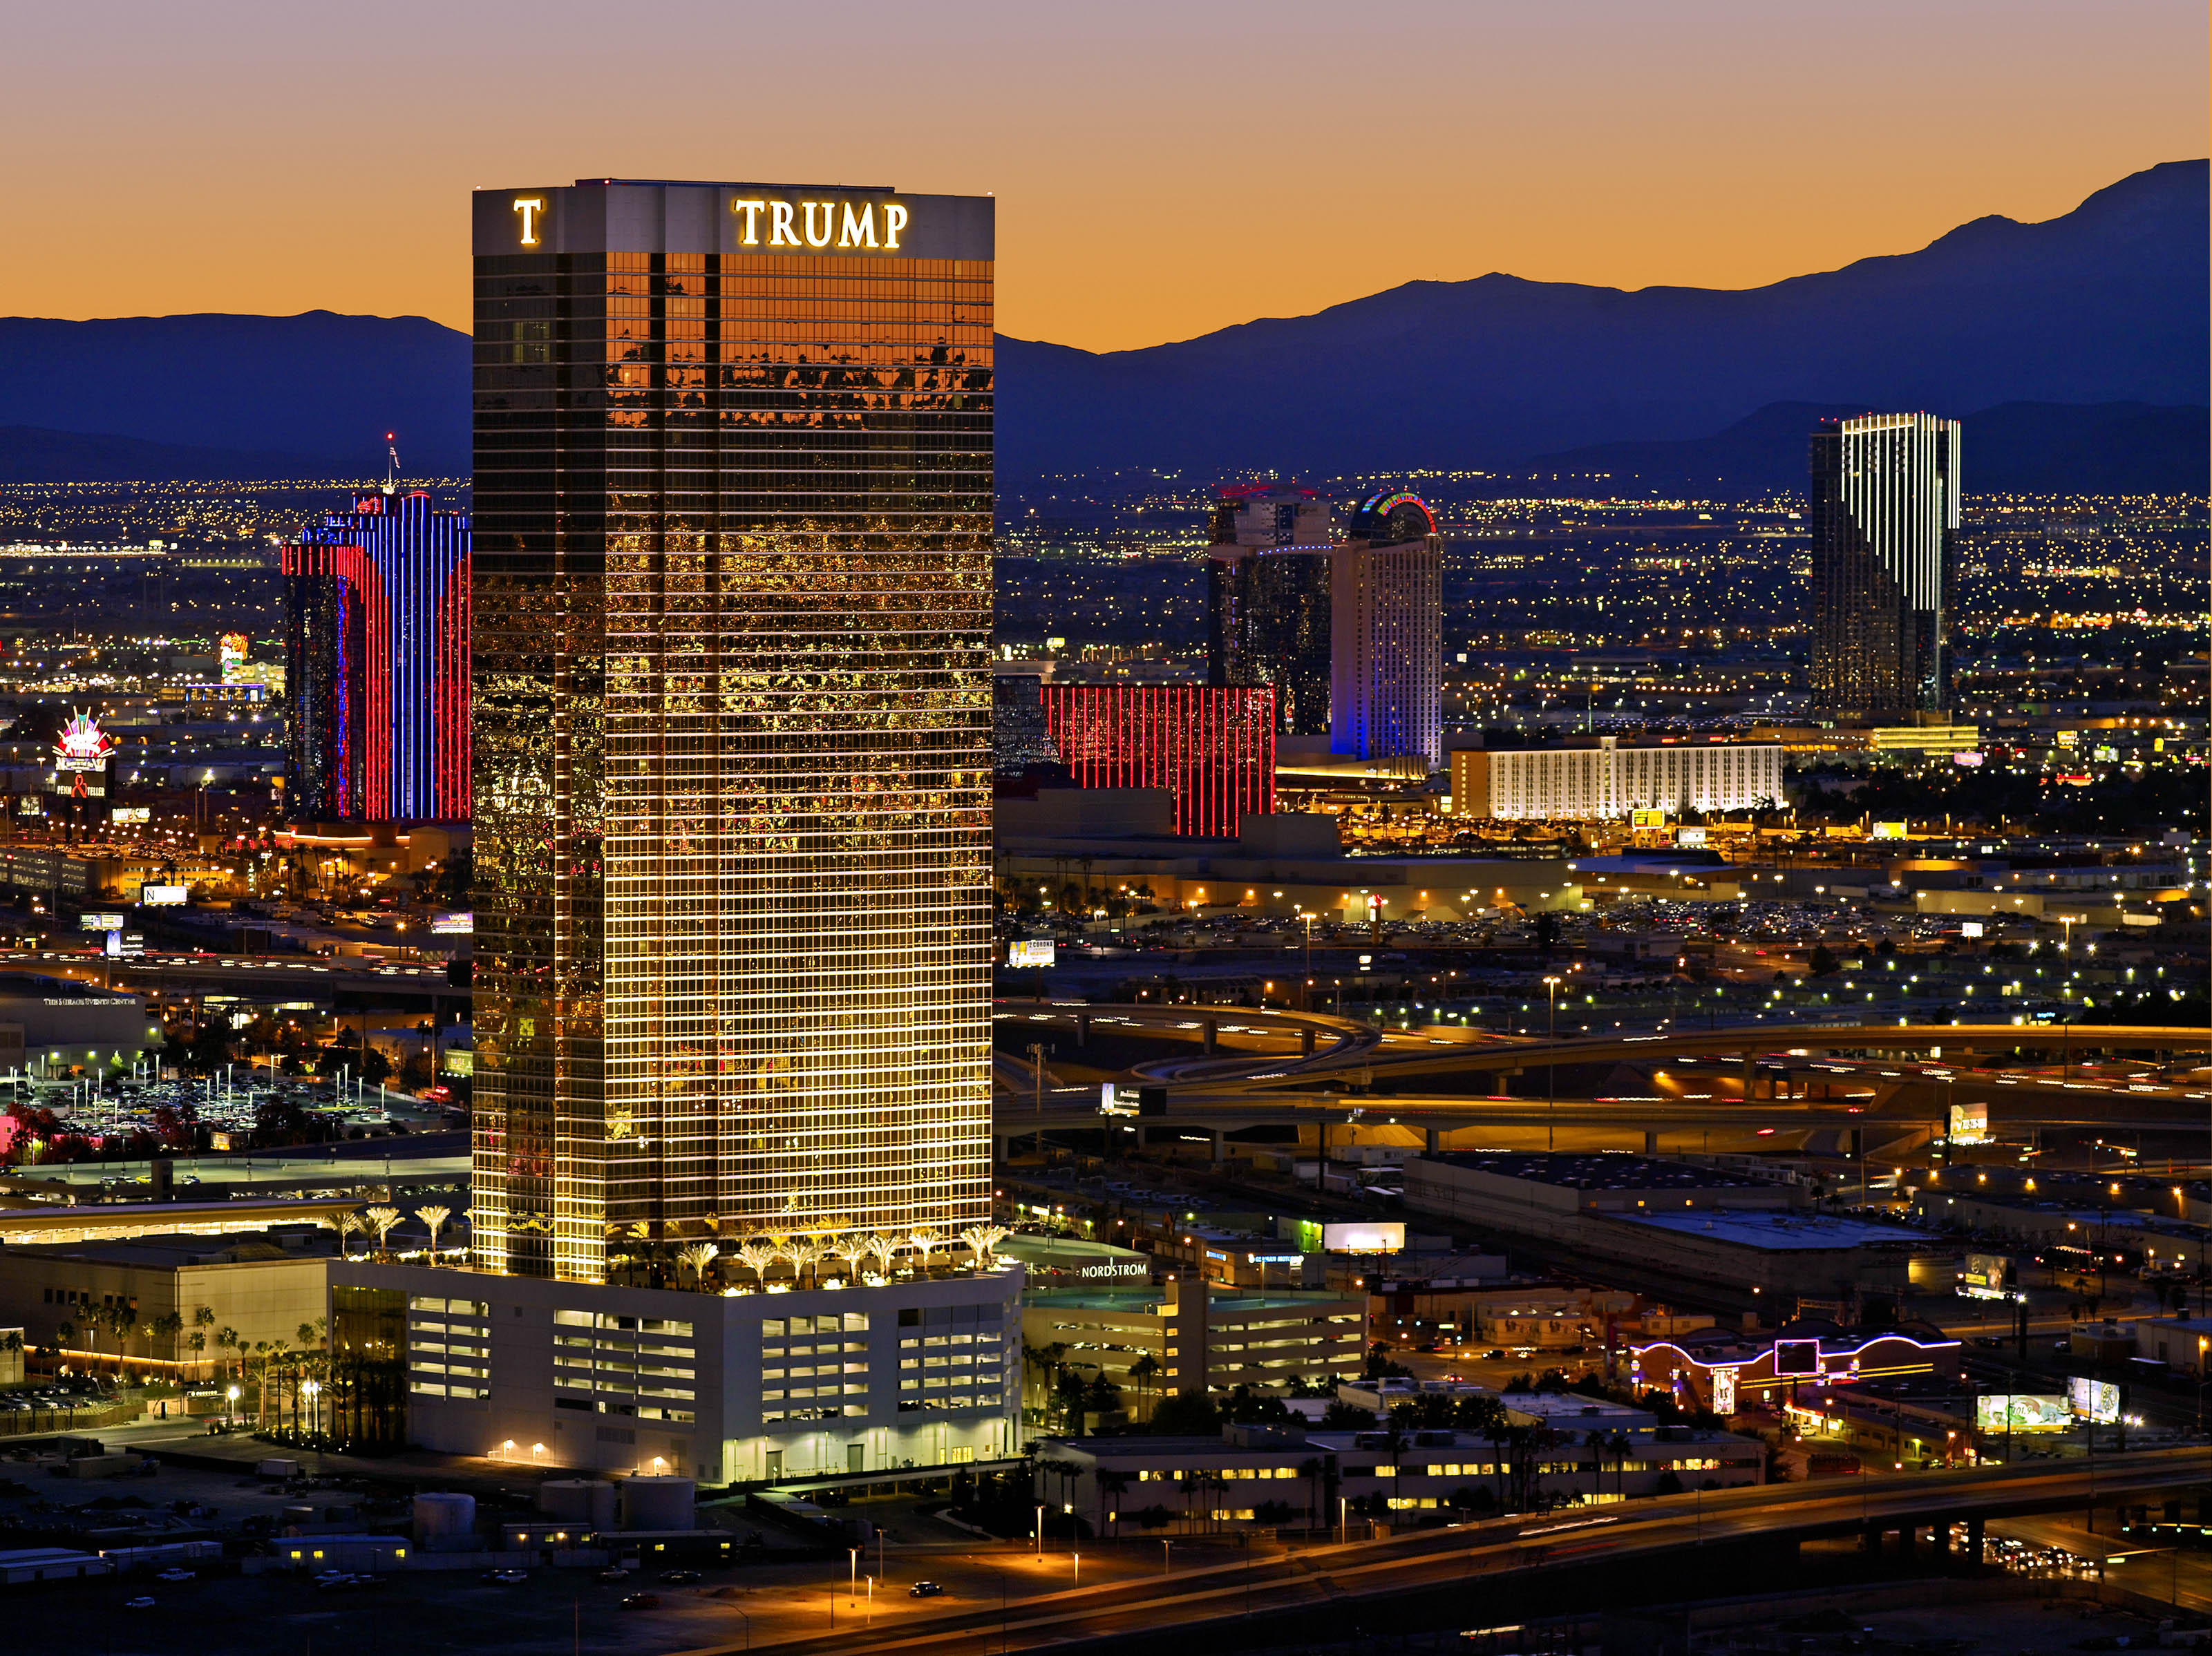 Trump towers real estate listings updated every 15 minutes for Site location hotel